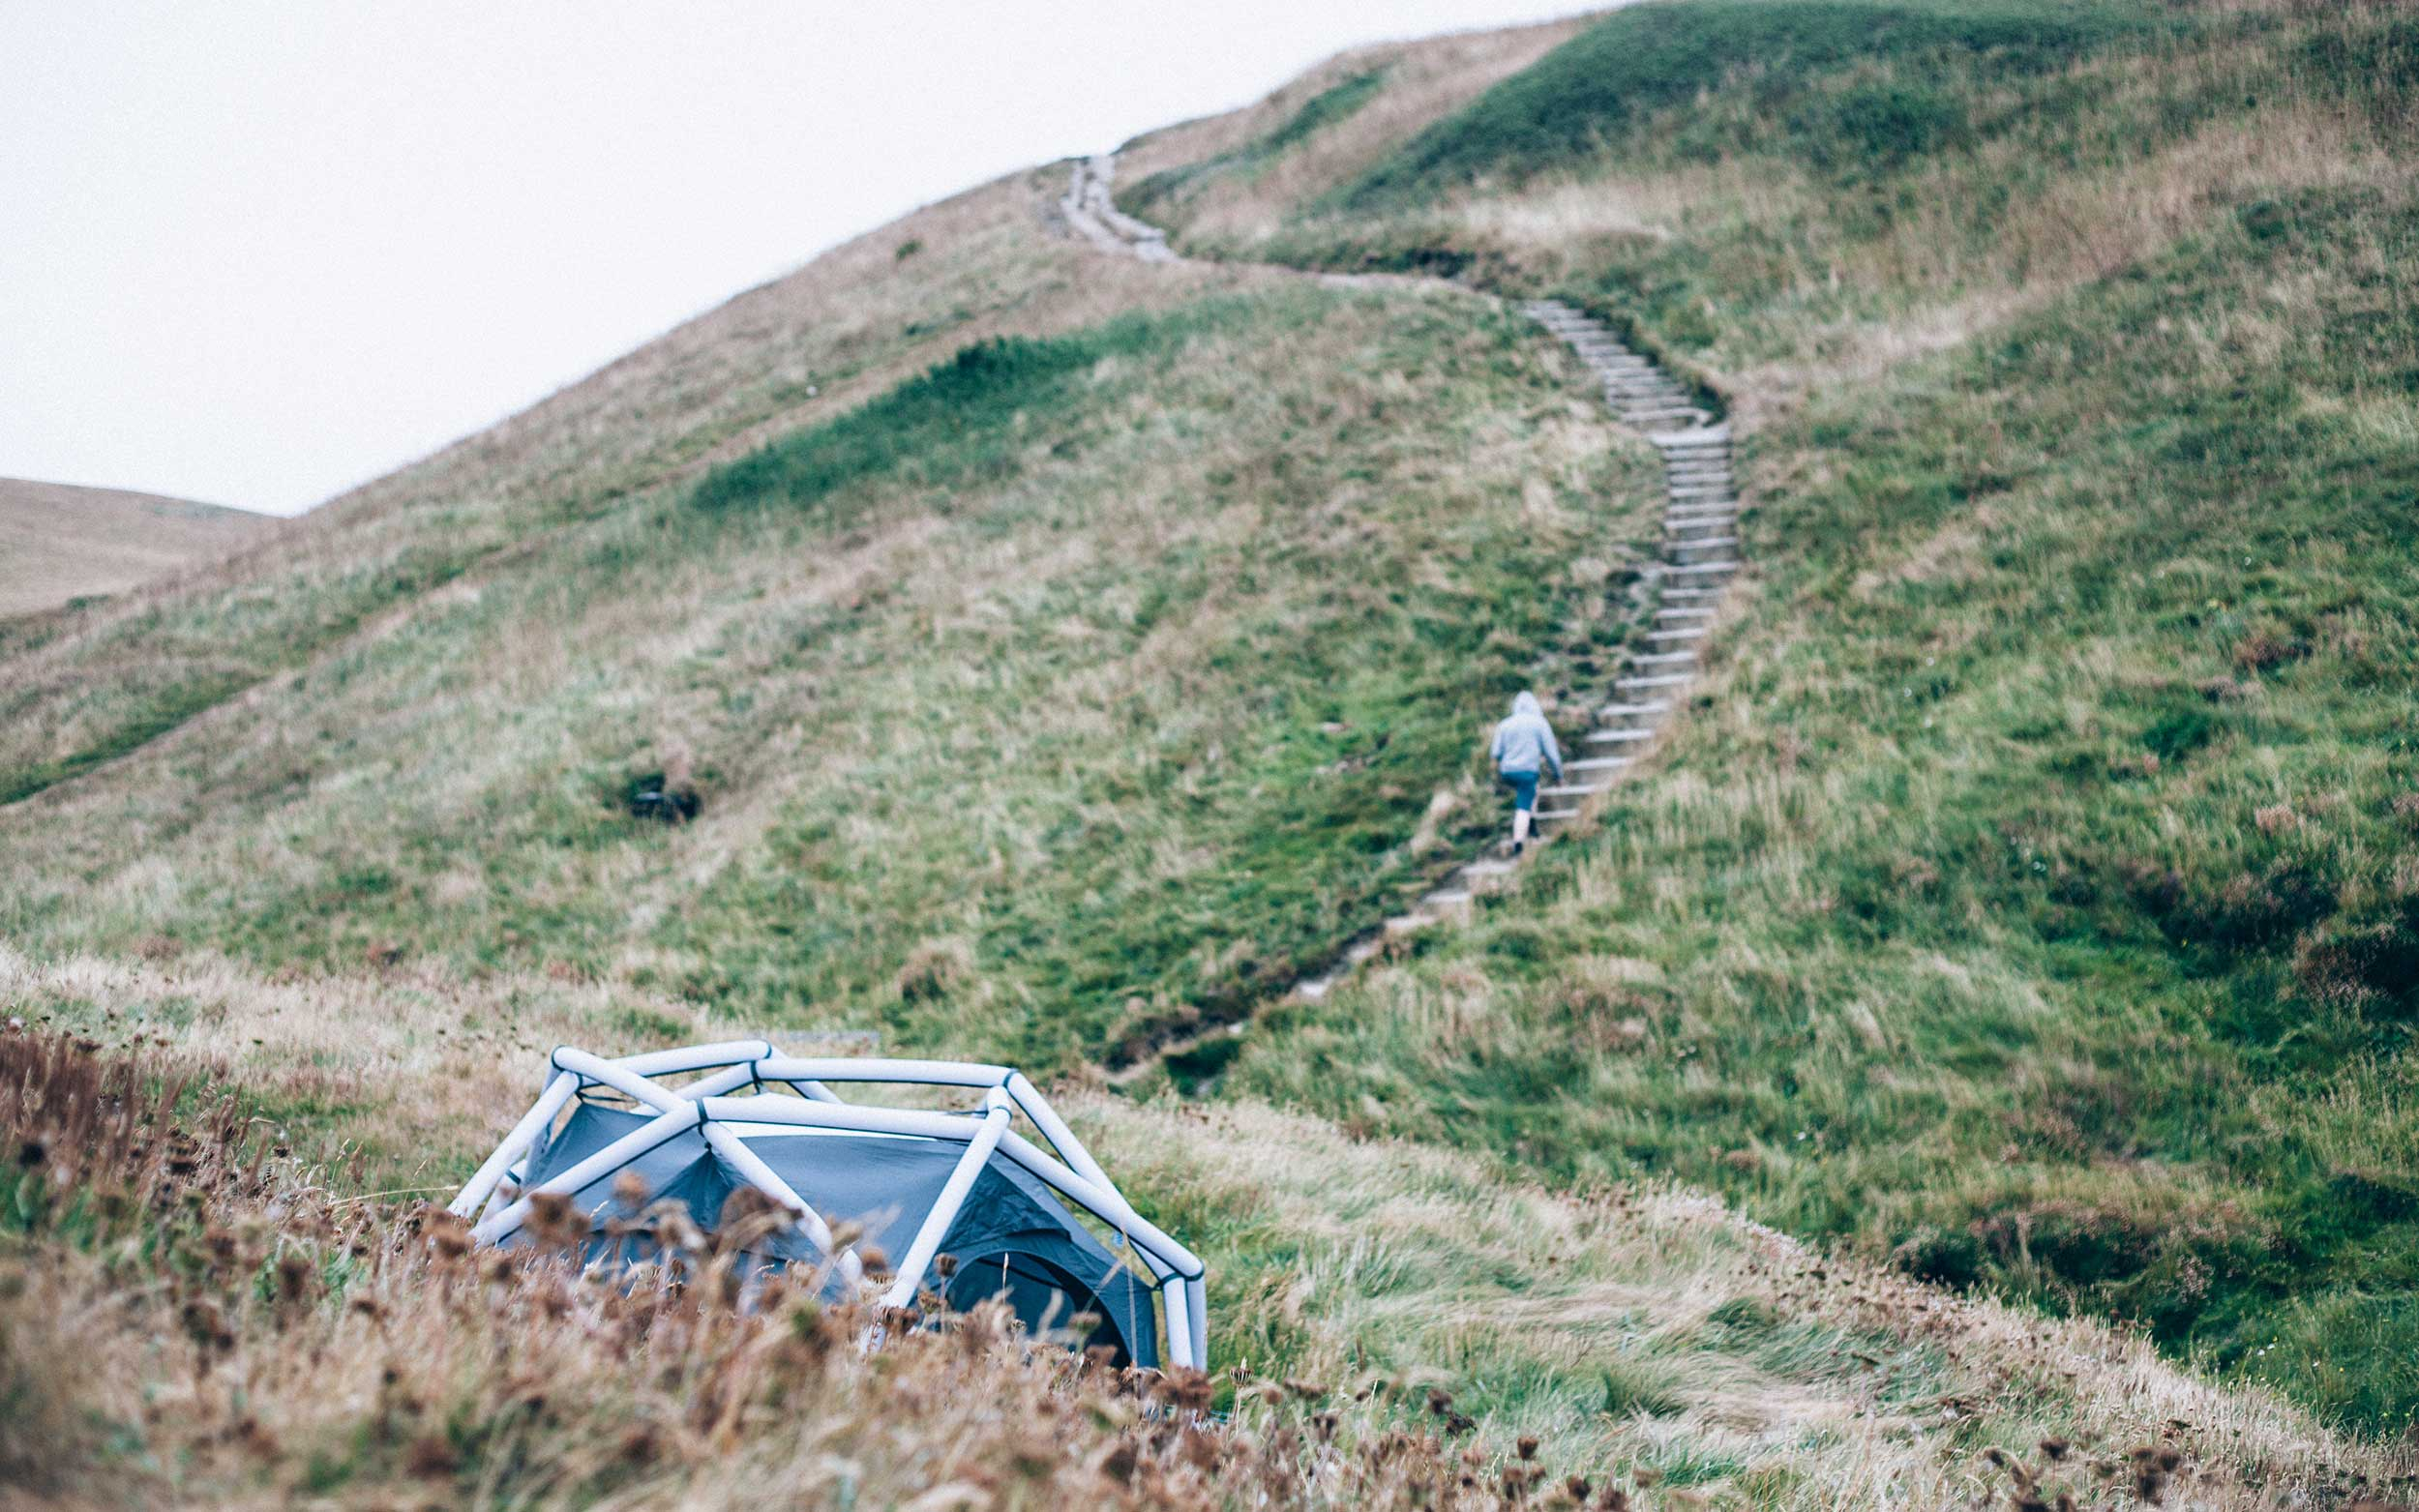 Solo+Camping+in+Cornwall+_+With+Heimplanet+_+Karl+Mackie+Photography (4).jpeg